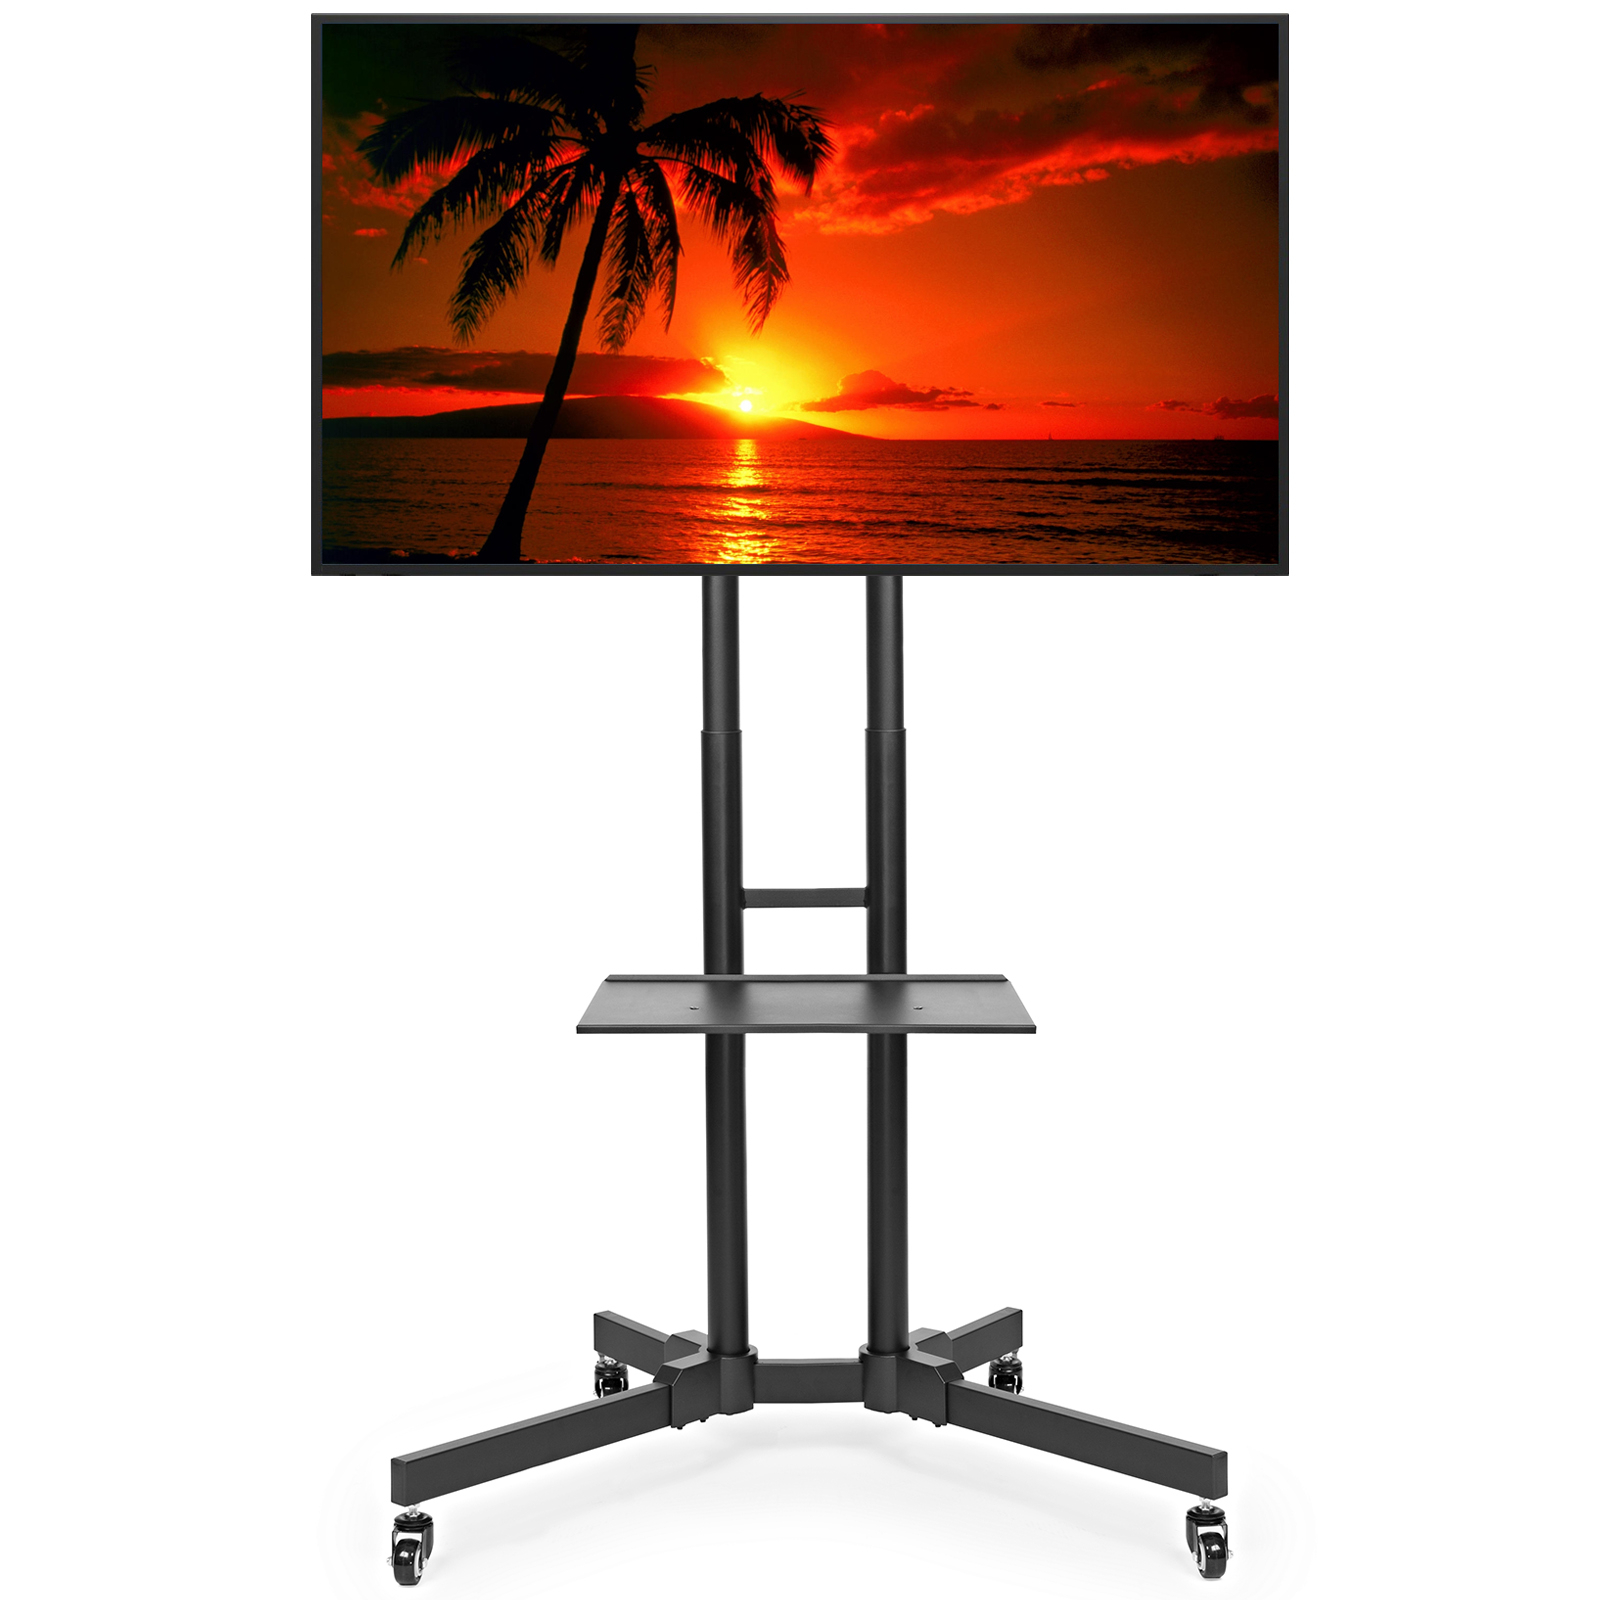 Rolling Tv Stand Cart Mount For Oled, Led, Flat Screen Intended For Easyfashion Adjustable Rolling Tv Stands For Flat Panel Tvs (View 12 of 20)